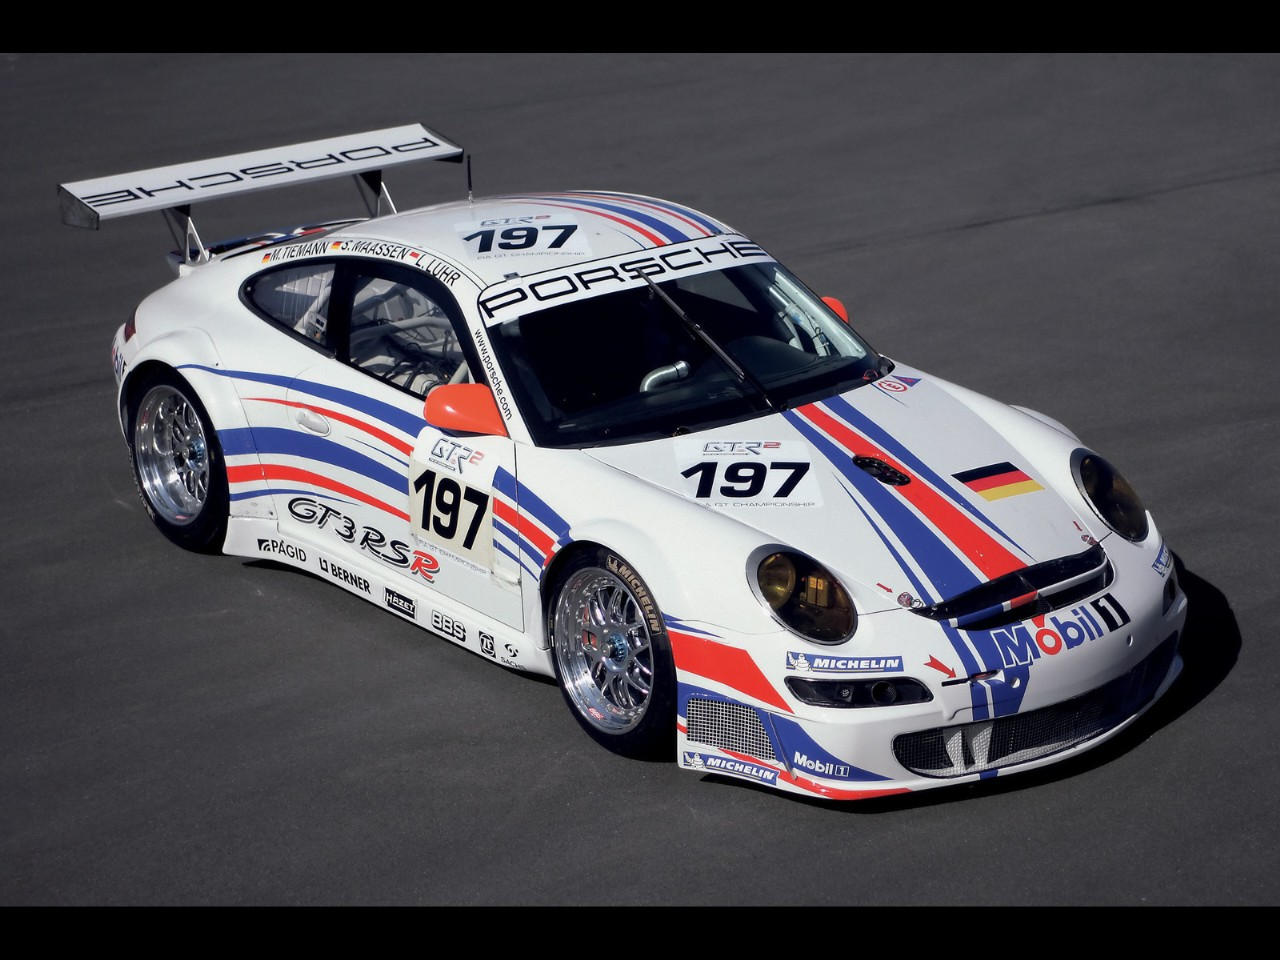 Racing Car Pictures Wallpaper 2007 Porsche 911 Gt3 Rsr Image Photo 42 Of 51